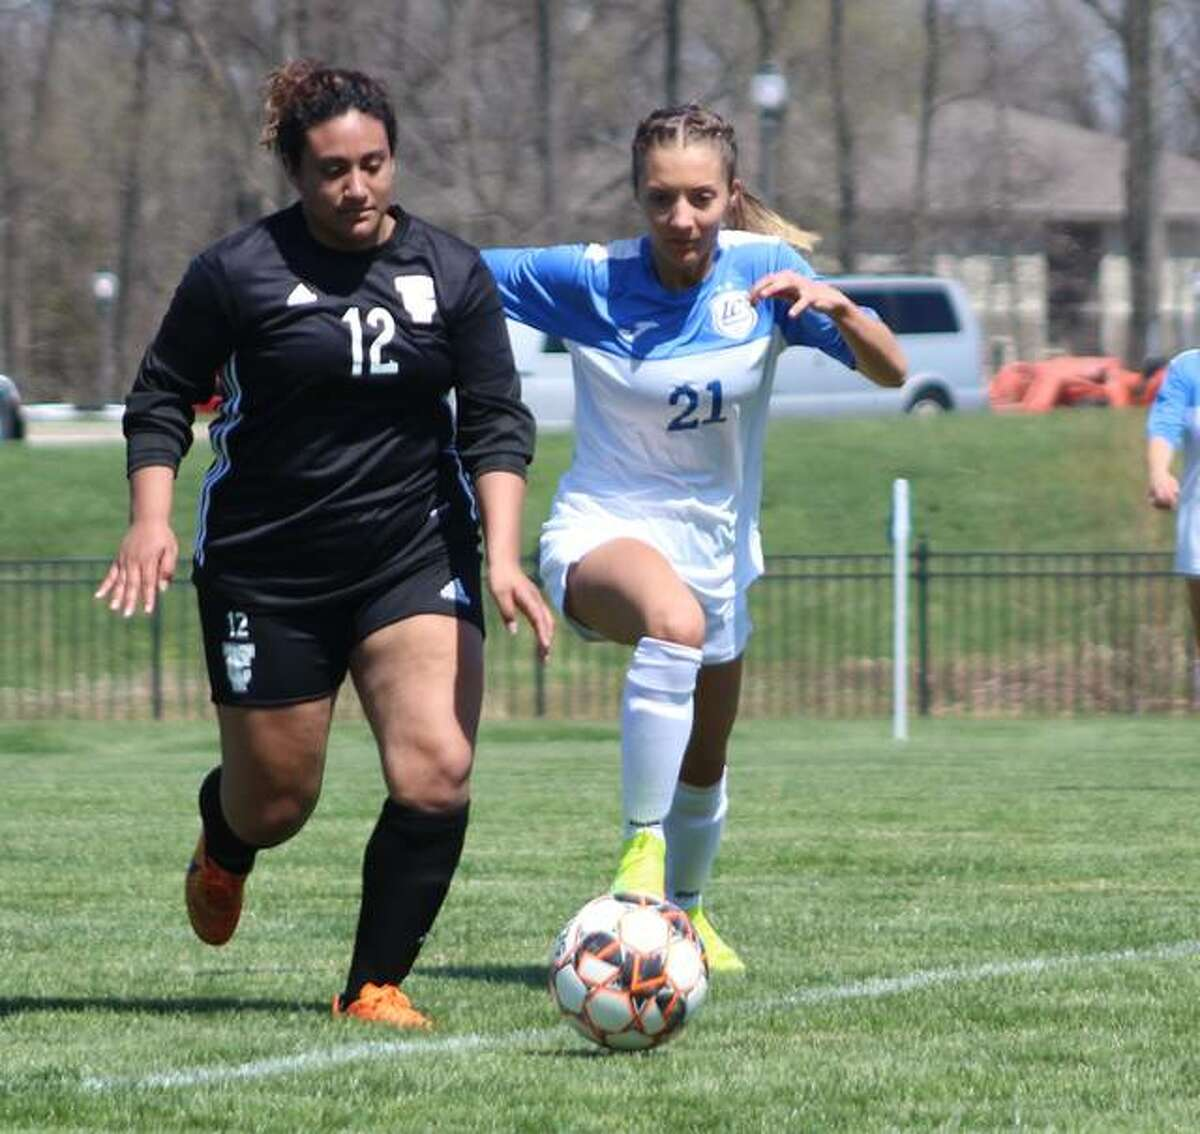 LCCC's Skylar Nickel (5) , a freshman from Carlinville, races for the ball with Triton's Lourdes Moreno (12) in Saturday's season opener at LCCC. The third-ranked Trailblazers downed Triton 5-0.